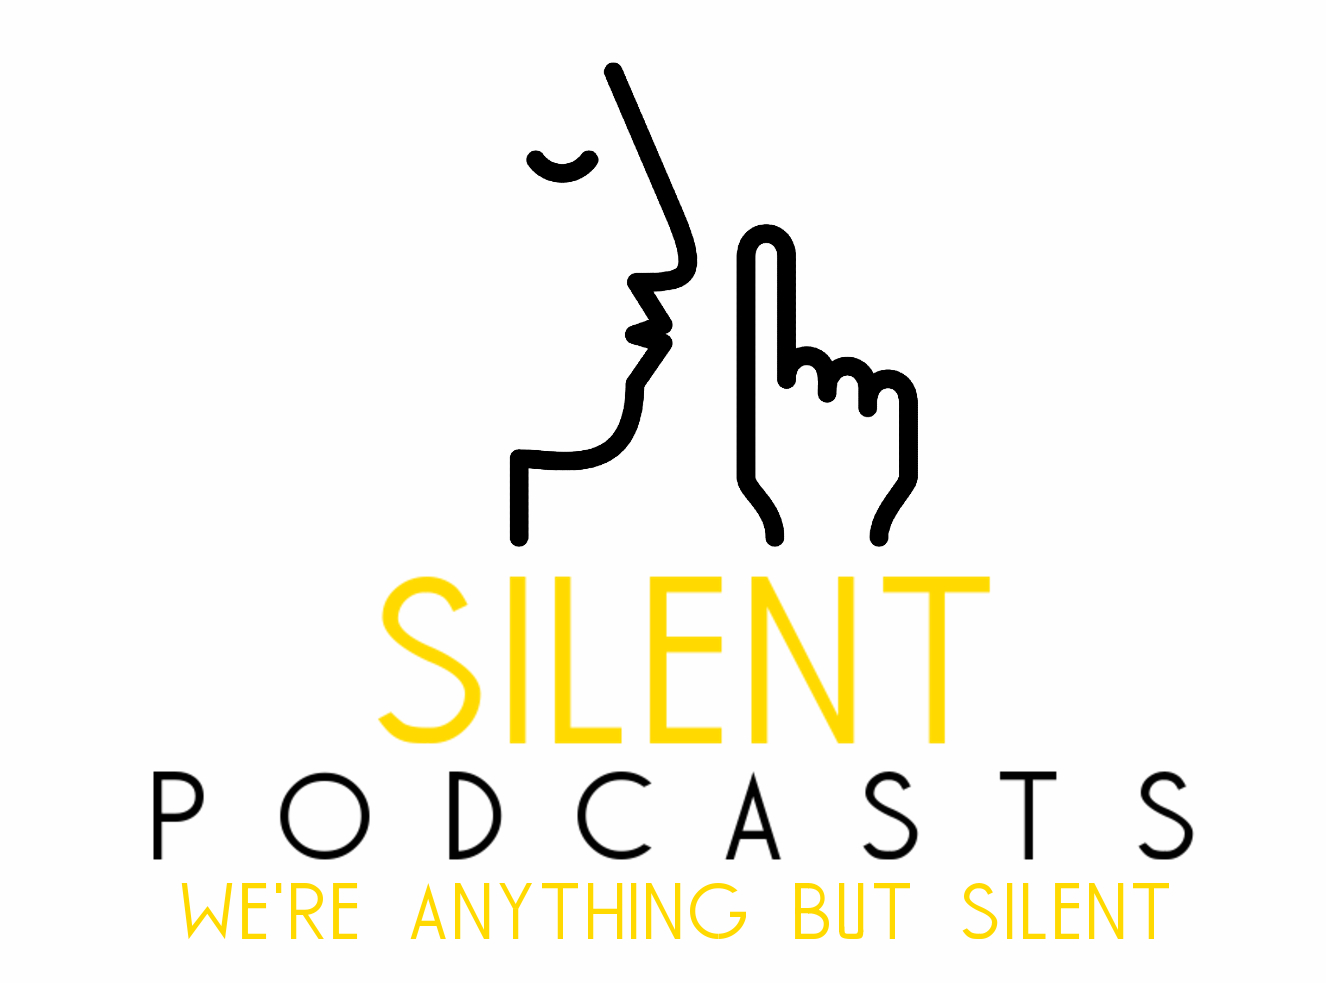 Silent Podcasts